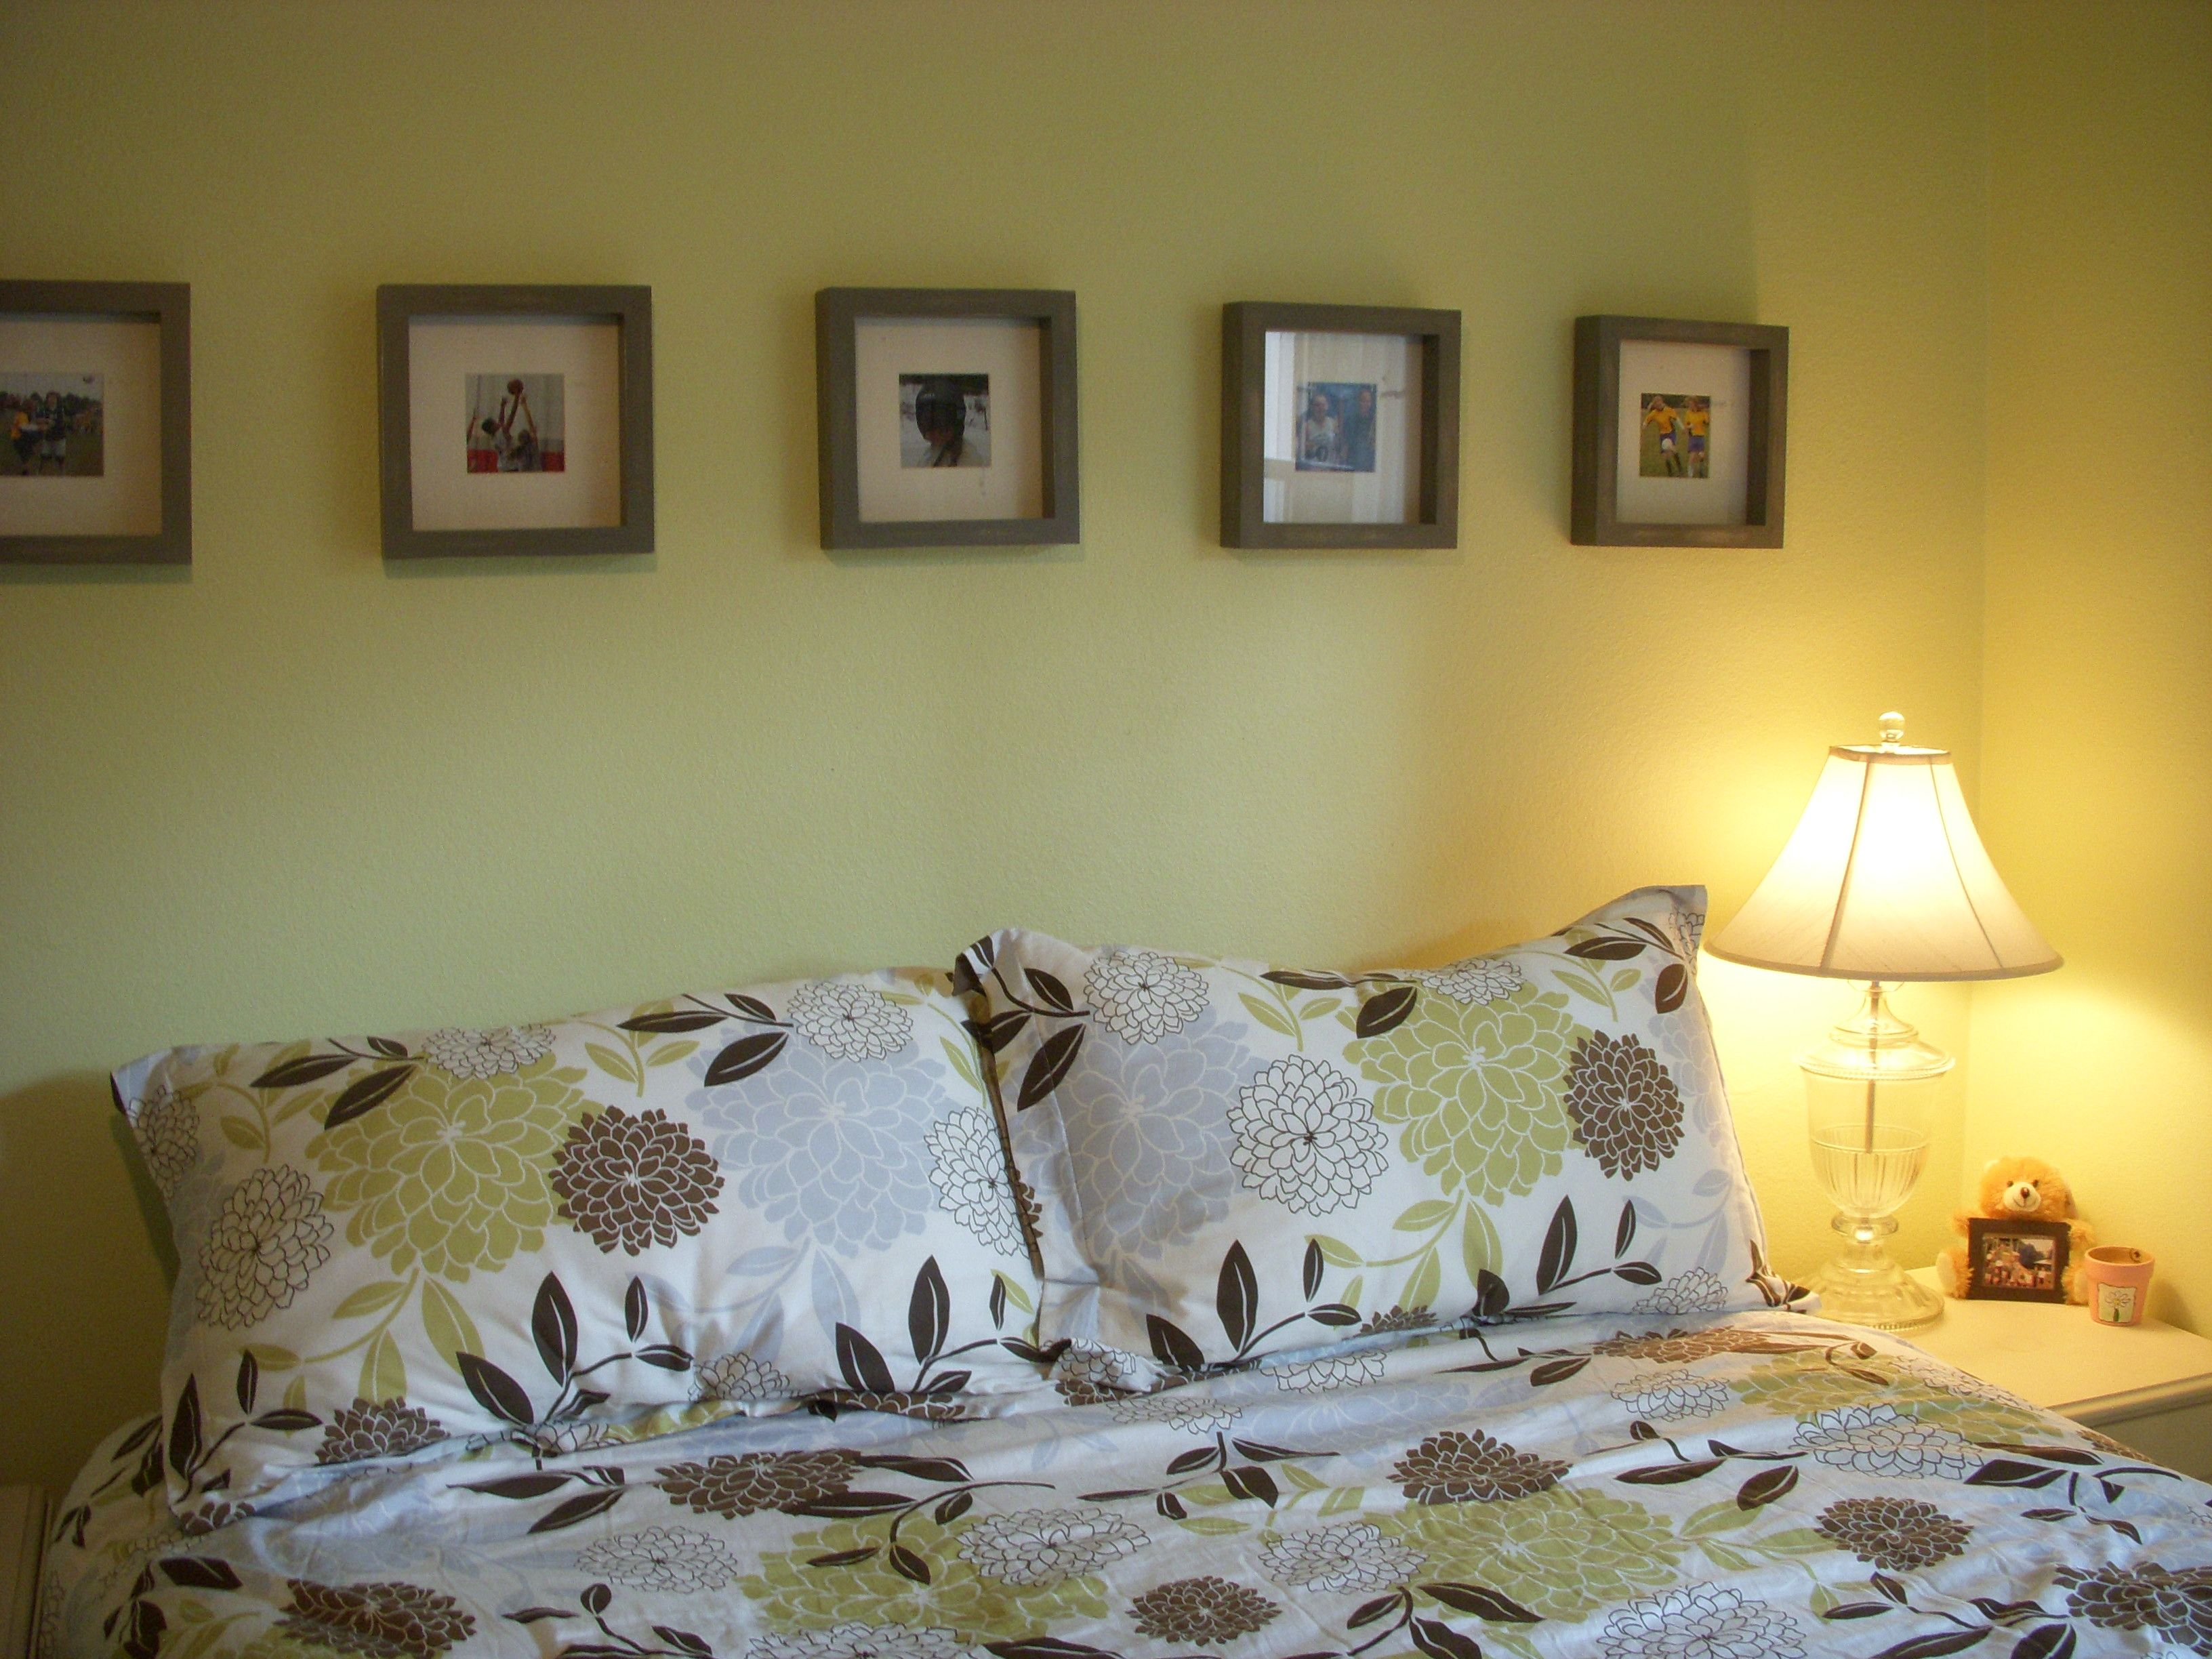 Best headboard decorating ideas to consider home decor - Bed without headboard ideas ...